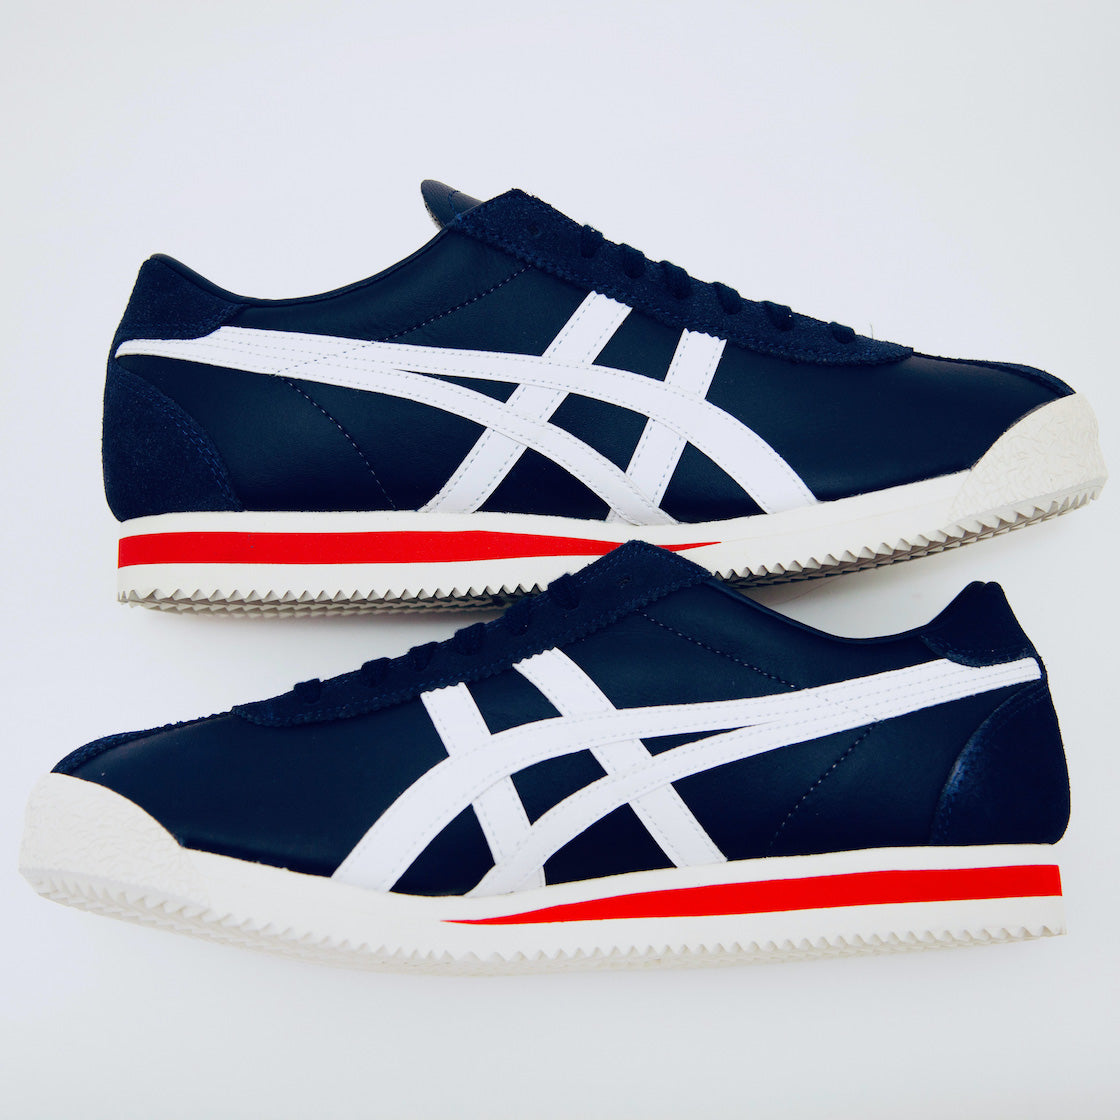 Onitsuka Tiger Brand History Feature Image of Tiger Corsair Shoes